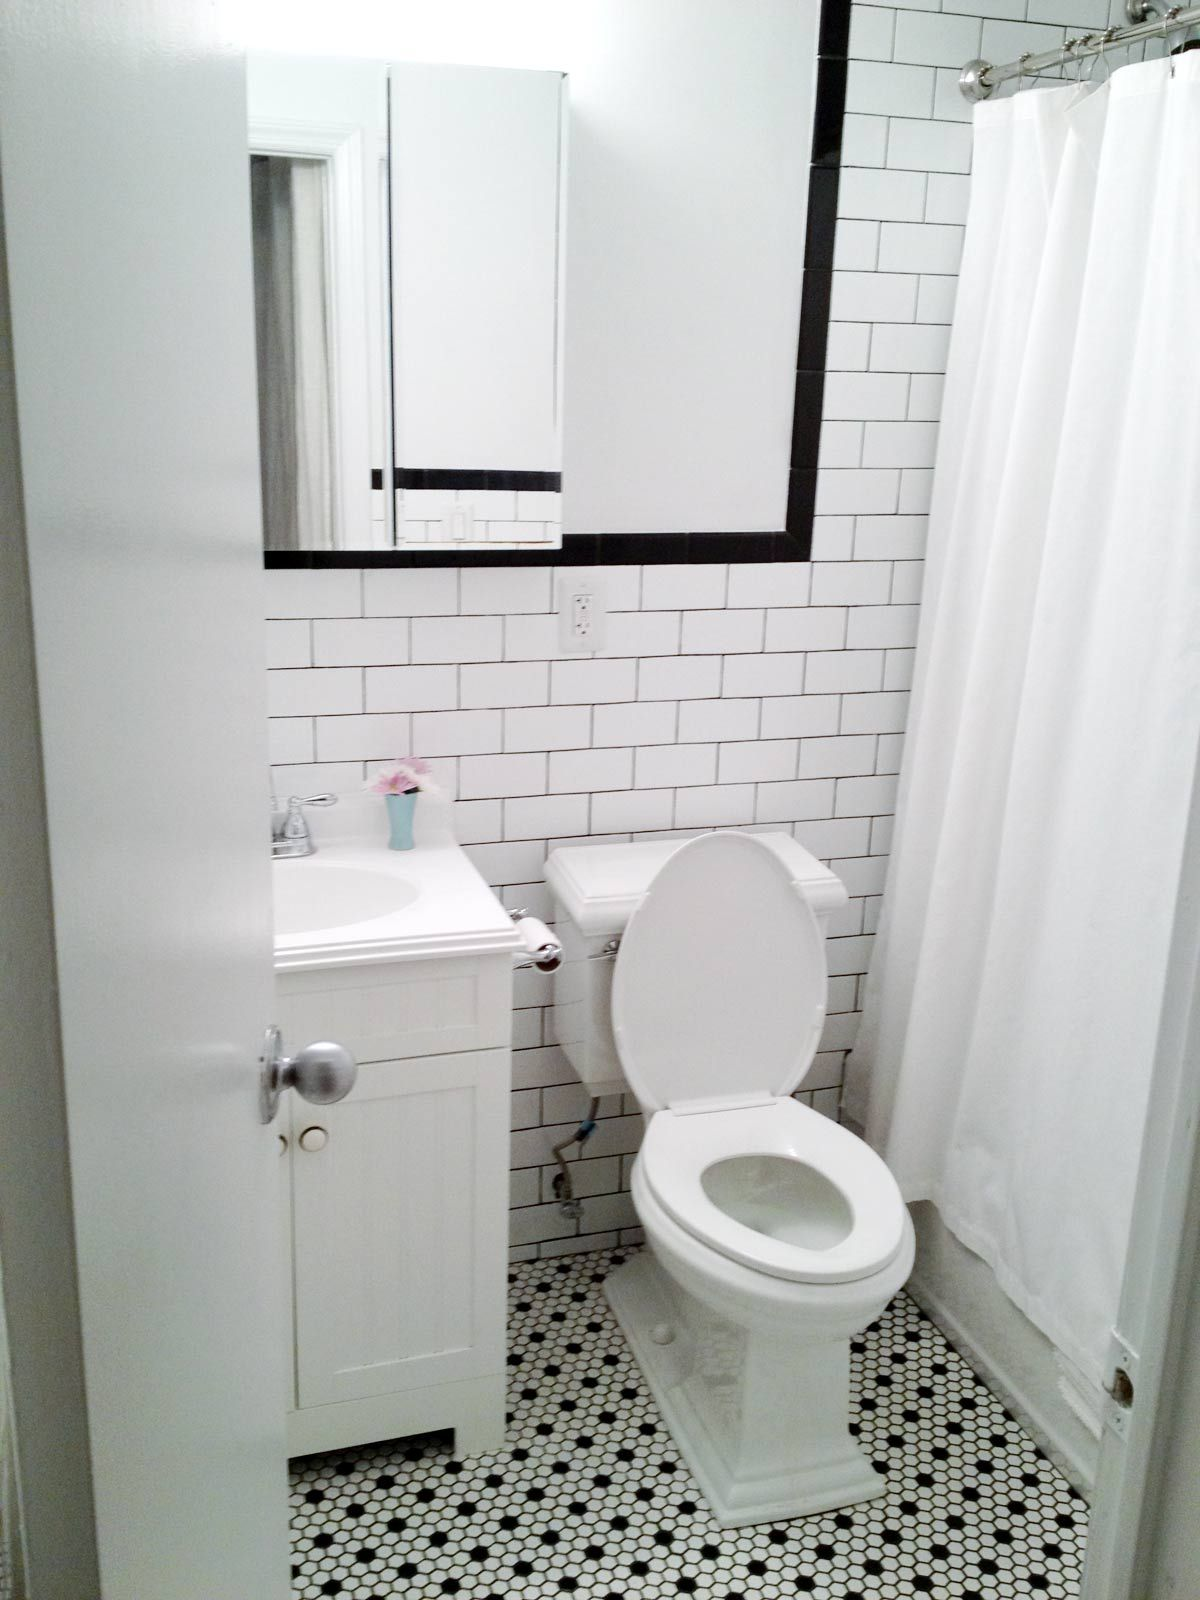 White Subway Wall Tiles With Black Grout  Bullnose Floor